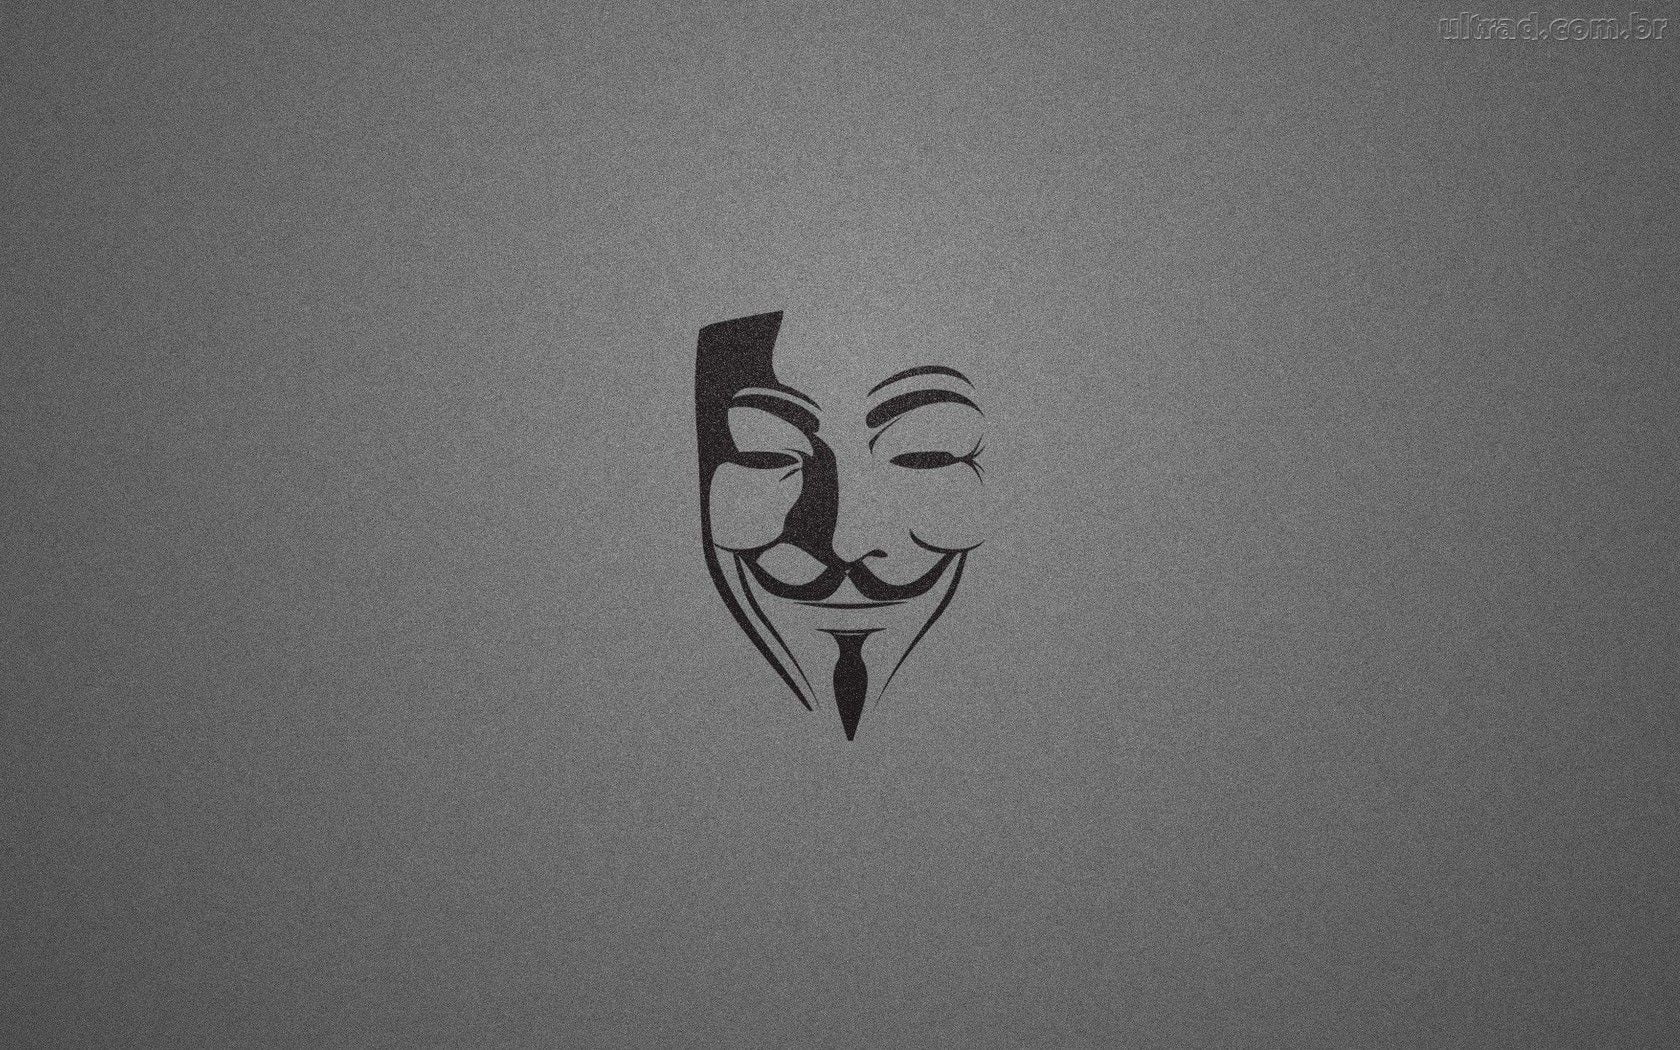 V For Vendetta Mask 1680x1050 Wallpaper Teahub Io